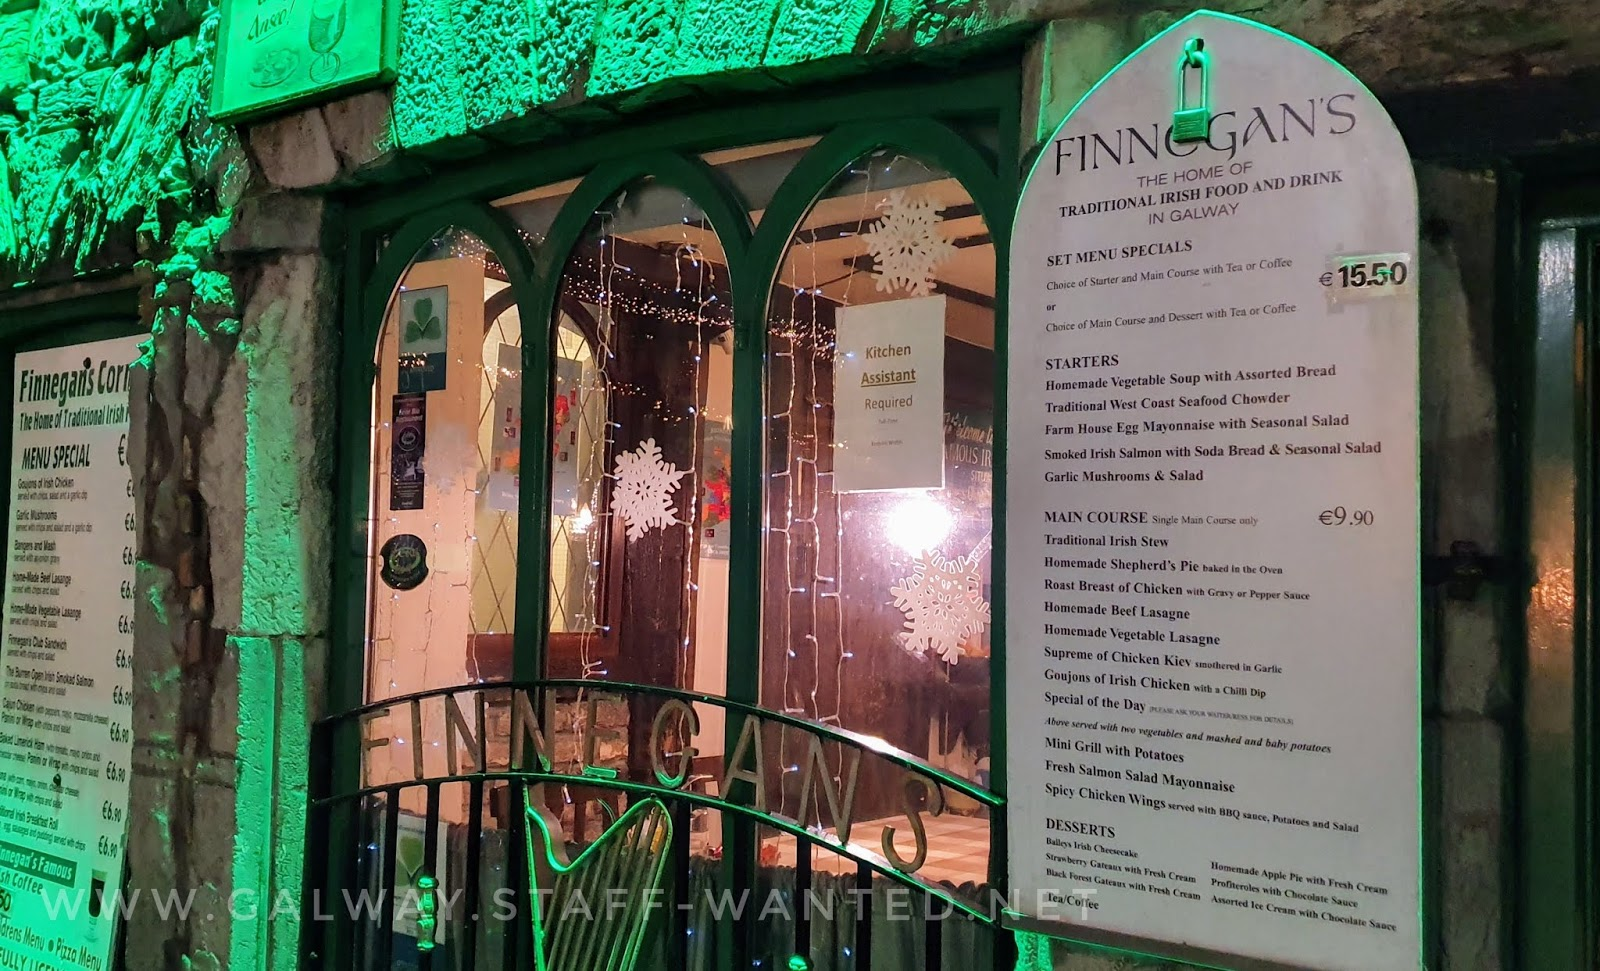 front window includes kitchen staff job add and you can see the detailed finnegans restaurant menu